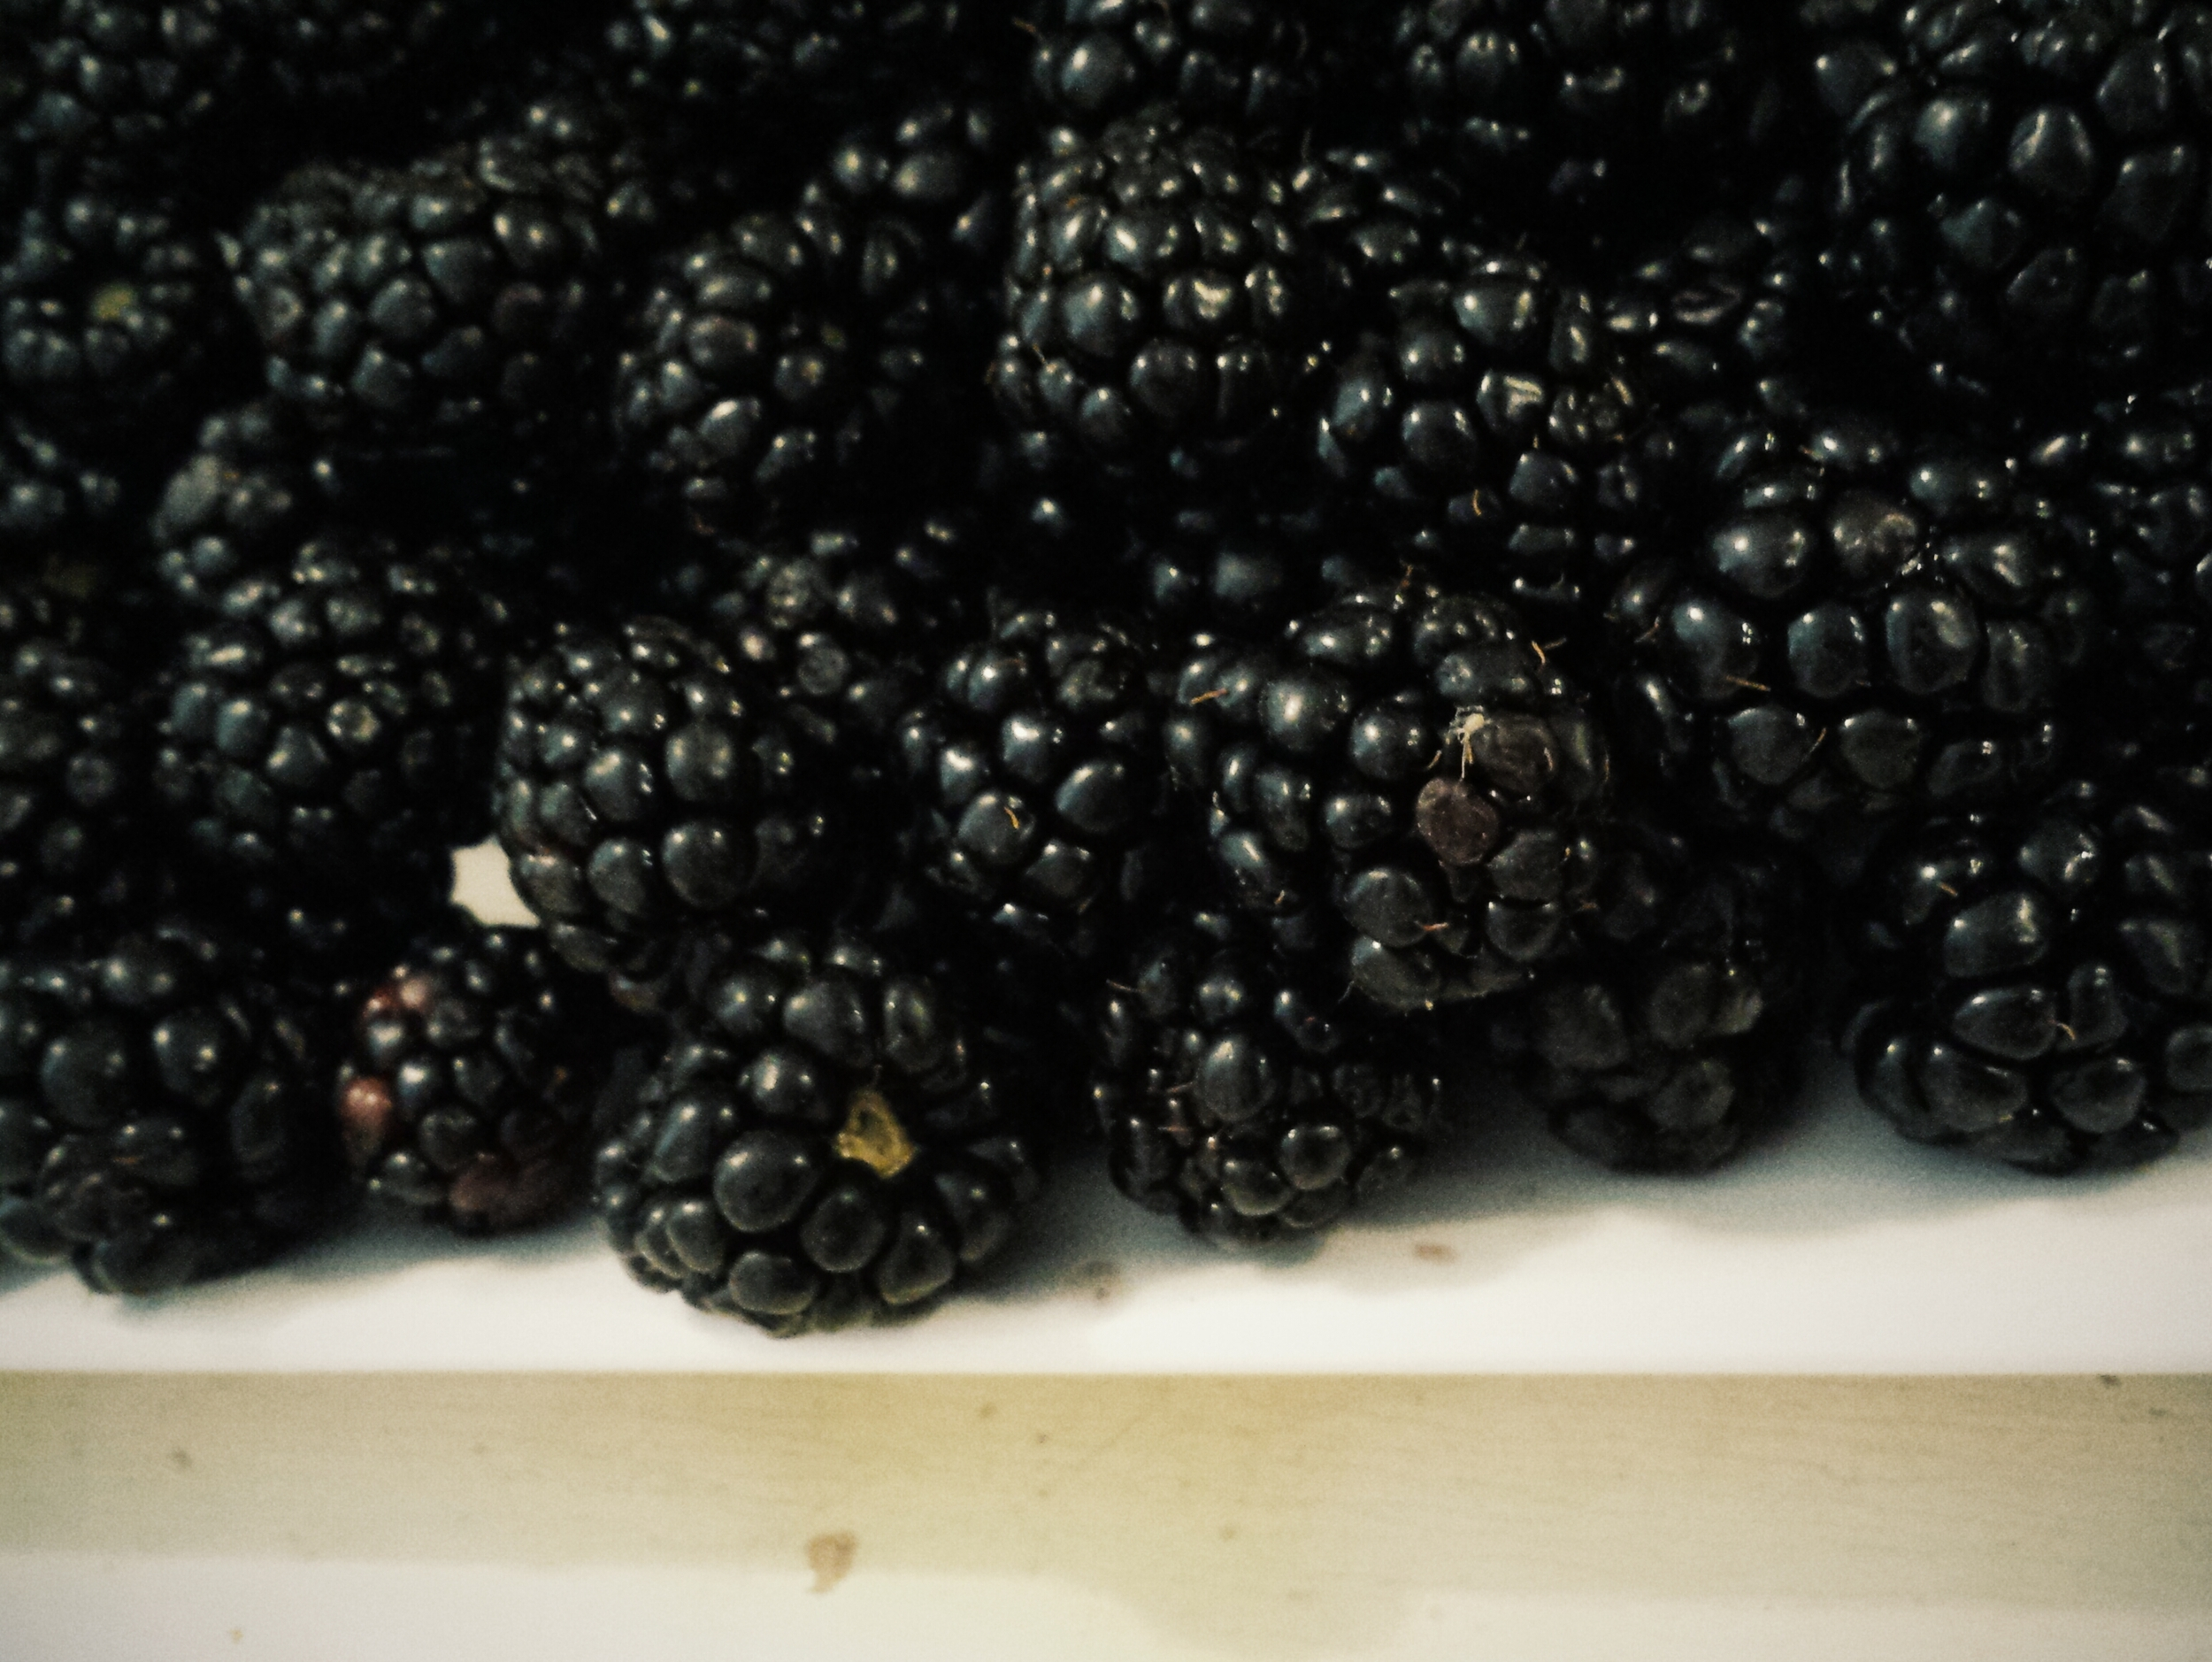 Oooh, Summer Blackberries!